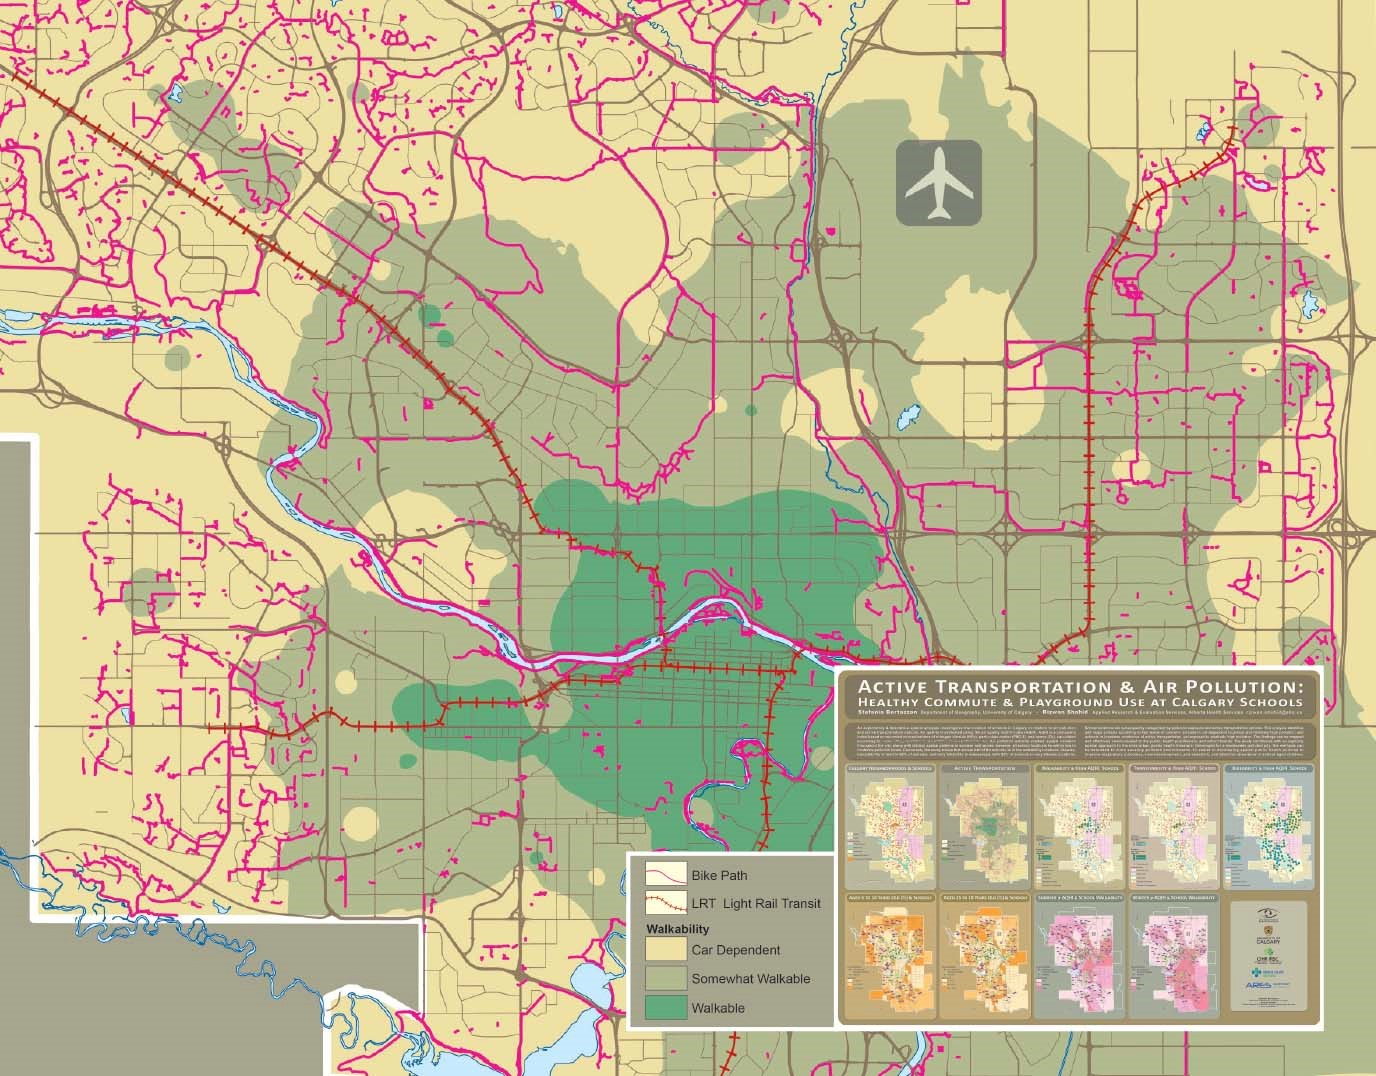 """A copy of the September map from Esri Canada's 2019 Map Calendar, entitled """"Active Transportation & Air Pollution: Healthy Commute & Playground Use at Calgary Schools"""" by Alberta Health Services. This map shows an exploratory, descriptive spatial analysis that investigates the location of schools in relation to air pollution and active transportation."""